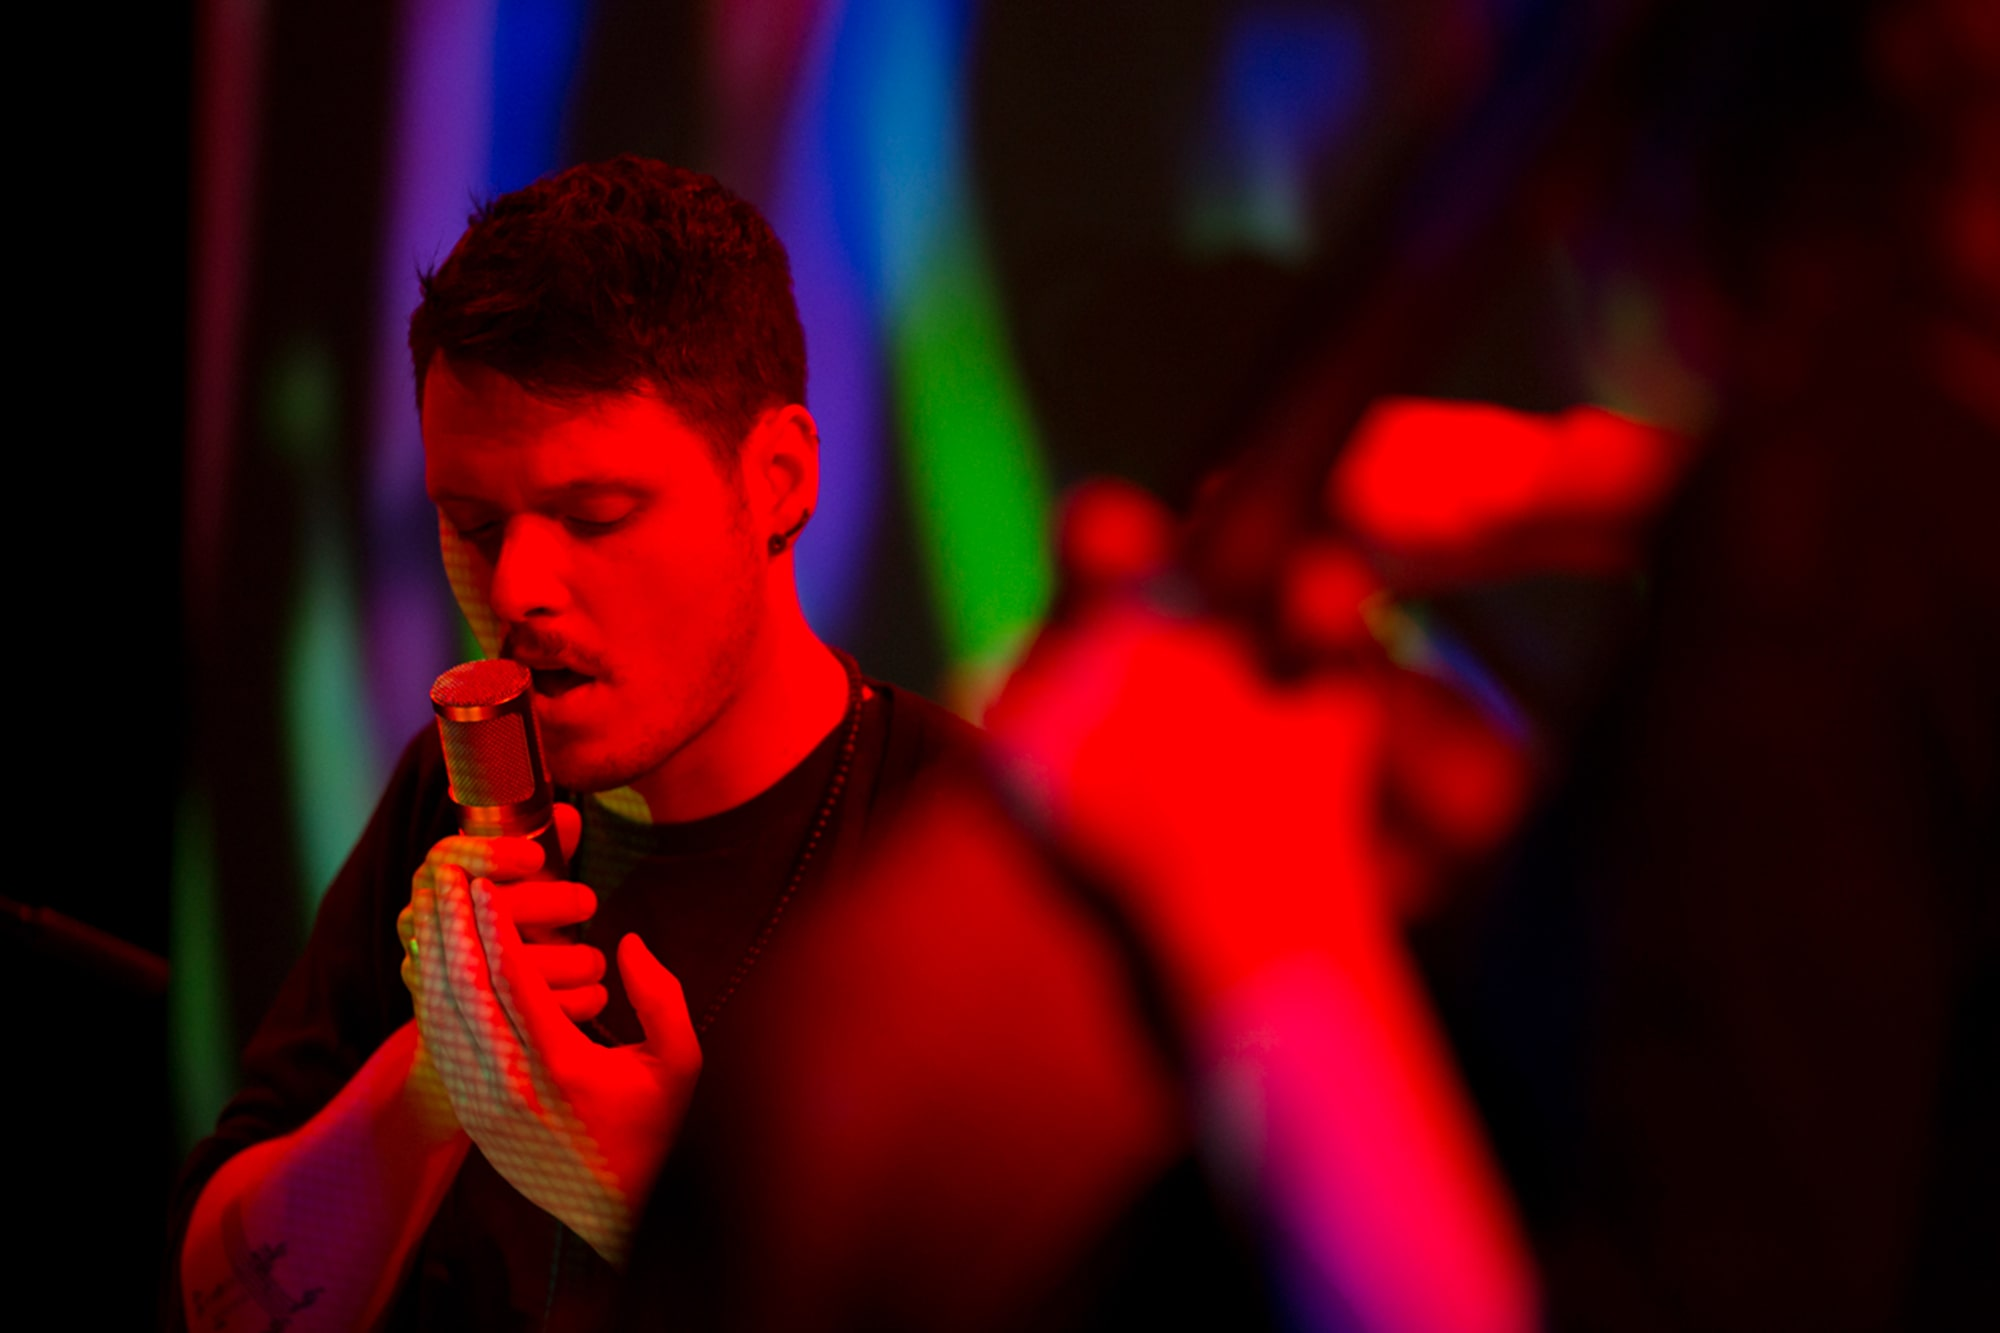 Randy Gibson performing <em>Apparitions of The Four Pillars in The Midwinter Starfield Under The Astral 789 Duet</em> at the 2013 Avant Music Festival